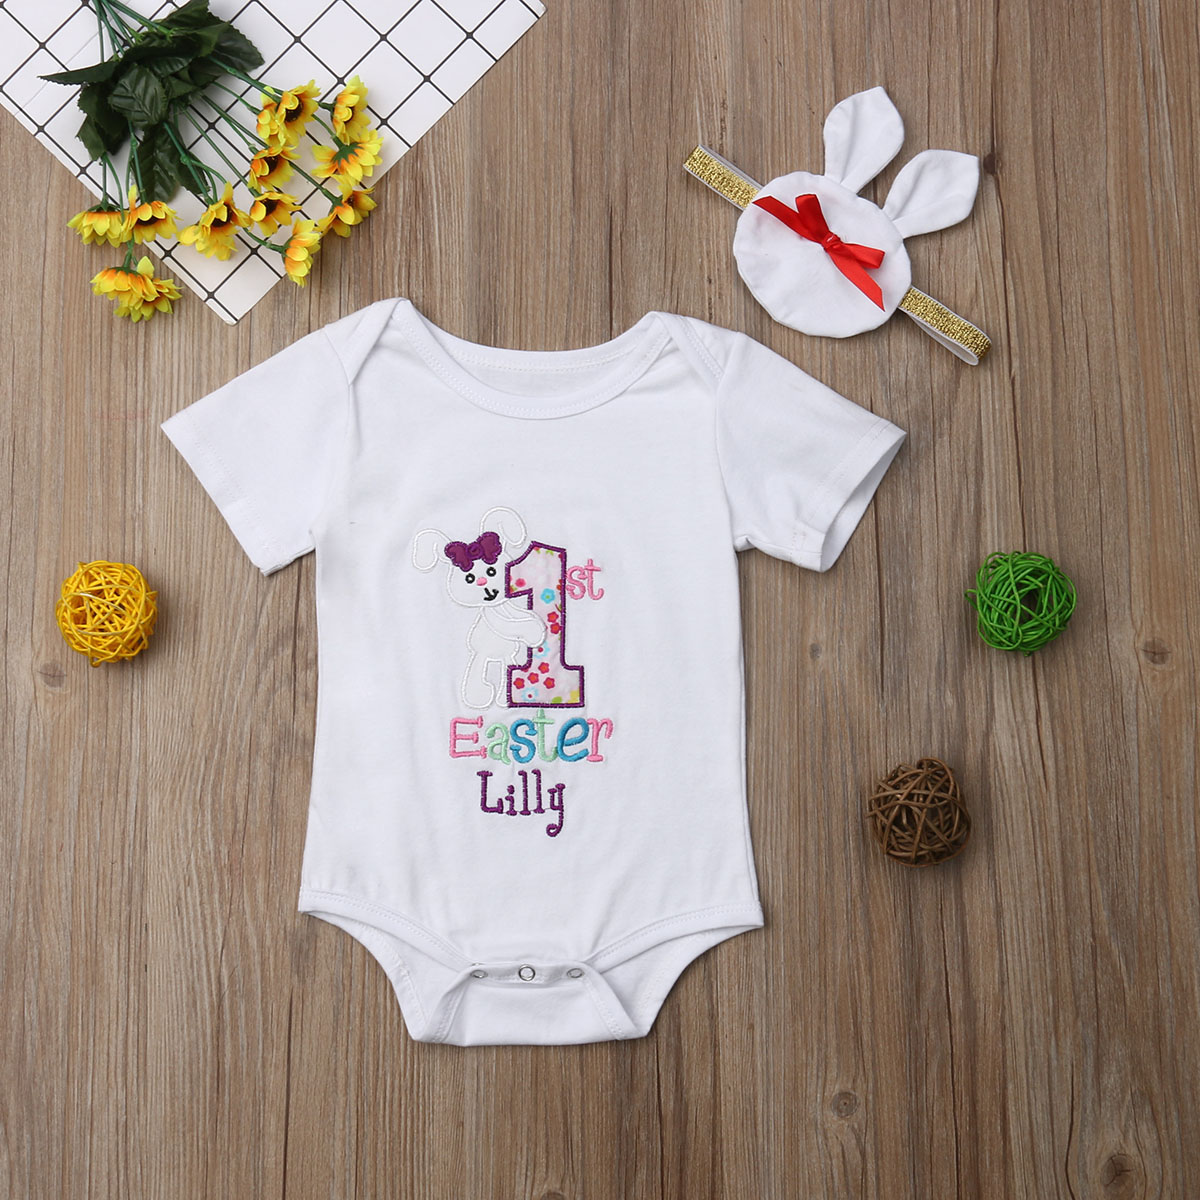 bbbeffdae9b 2019 Newborn Baby Boy Girl Bunny Romper Jumpsuit Baby First Easter Outfit  Princess Toddler Girls Summer Clothes 0 18M-in Rompers from Mother   Kids  on ...